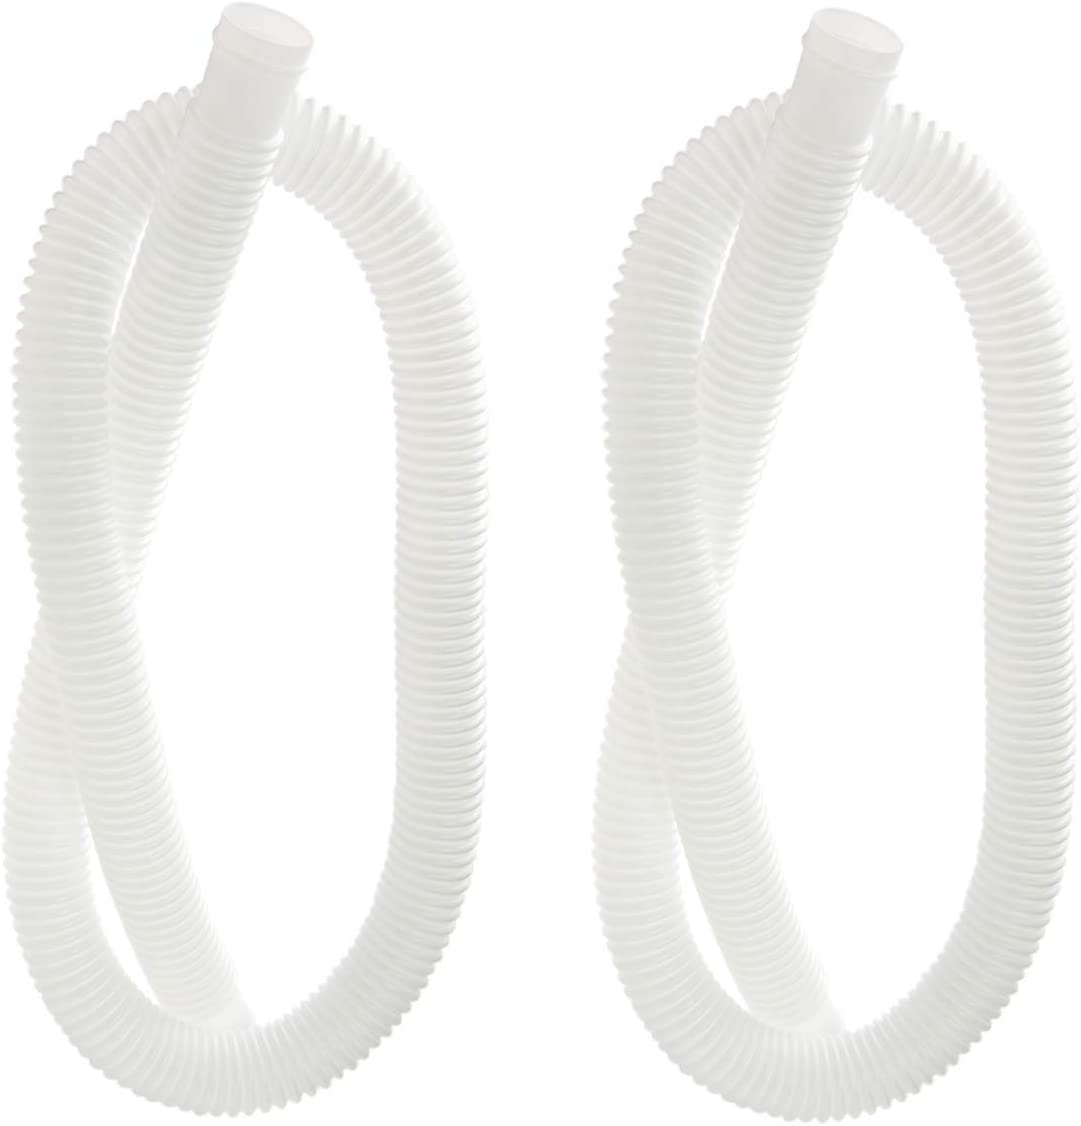 """Ximoon 2 Pack Accessory Hose Replacement for Intex 1-1/4"""" (32mm) Diameter Accessory Pool Pump Hose - 59"""" (150cm) Long"""